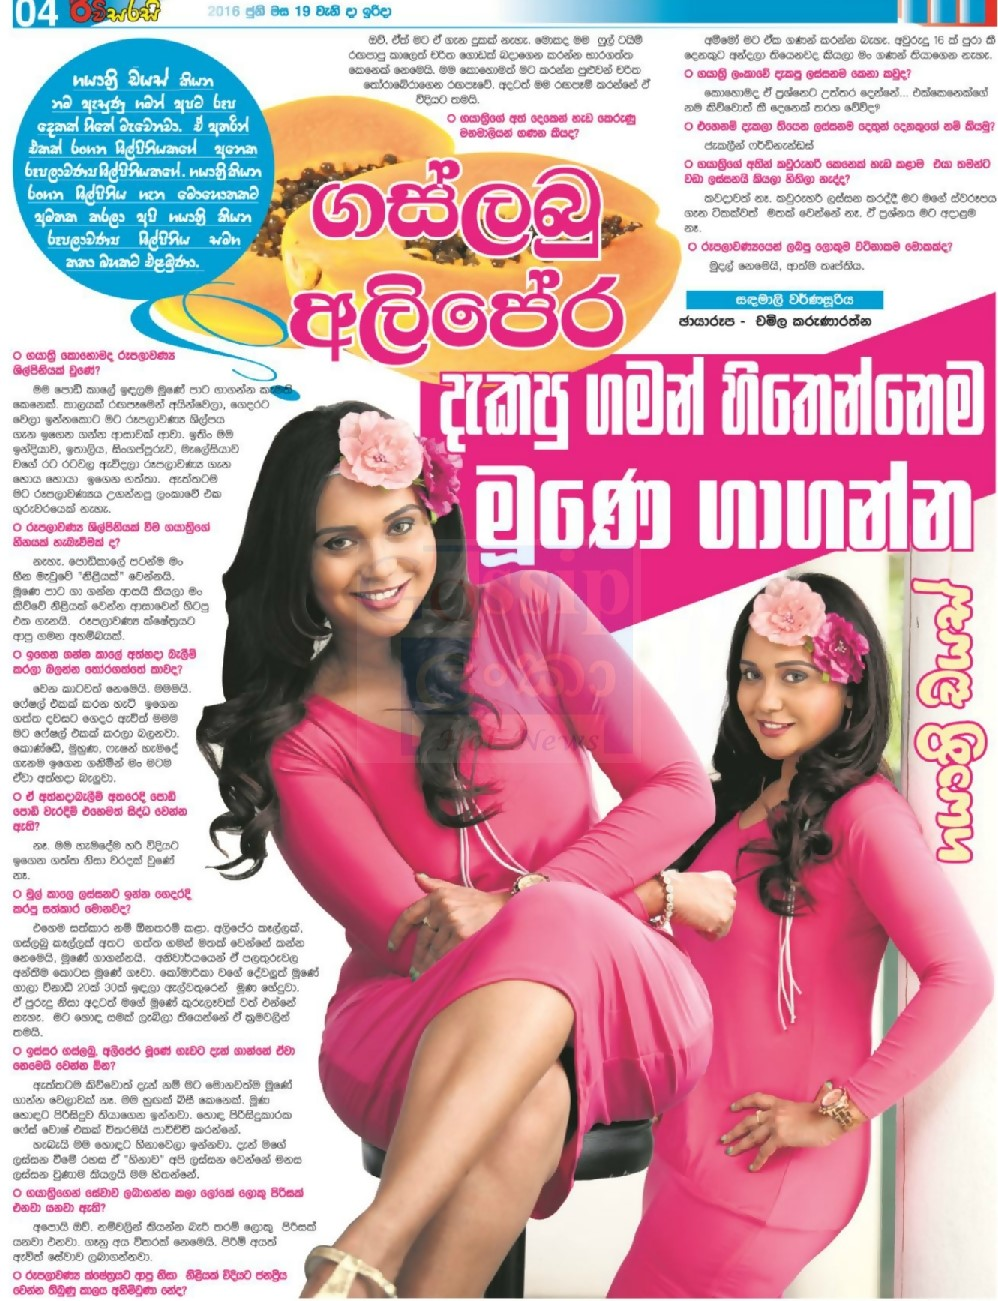 Gossip Chat with Gayathri Dias